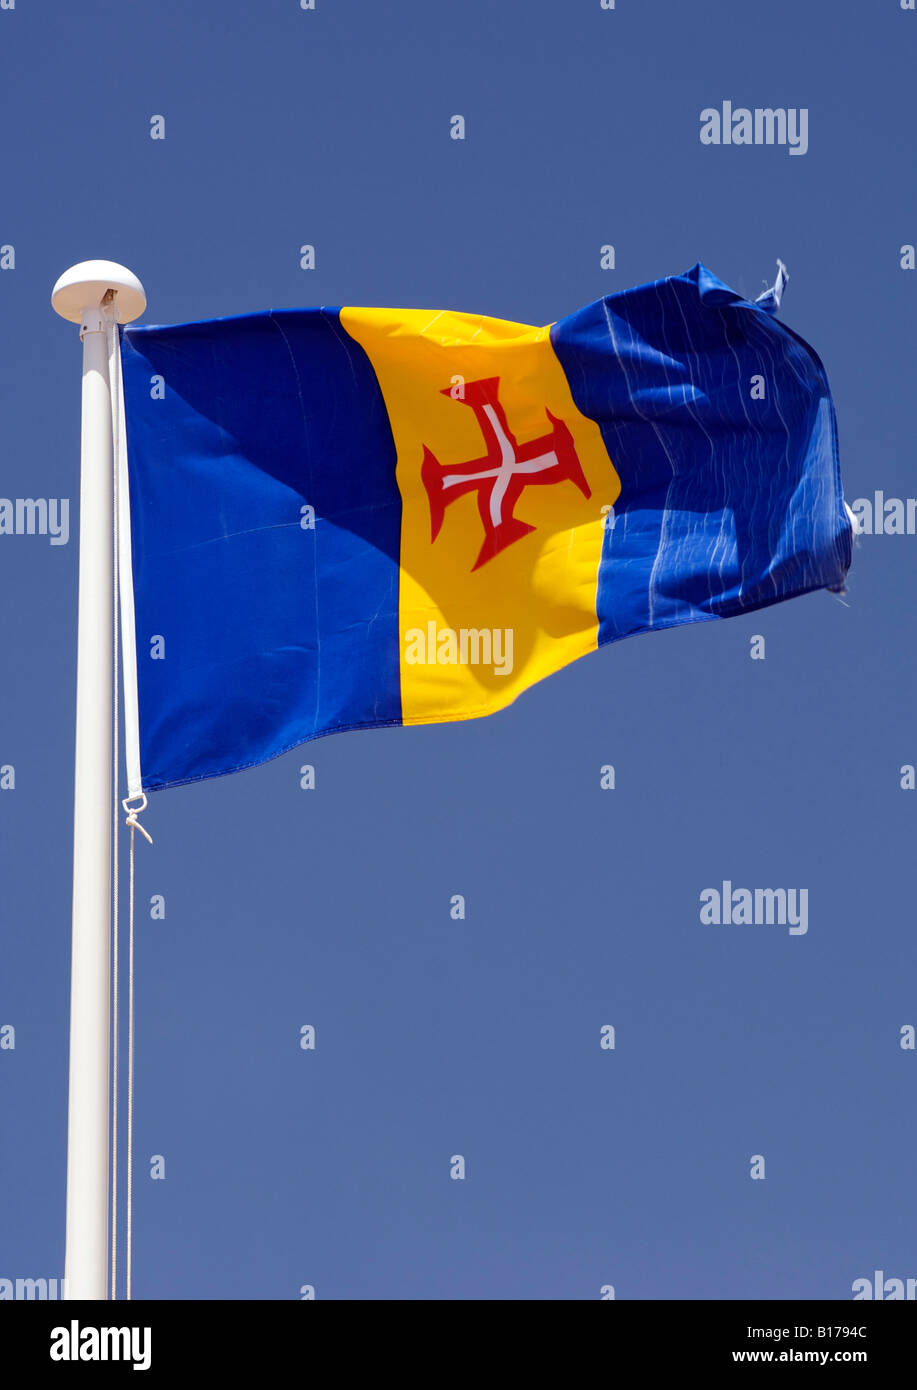 The flag of Porto Santo, the Portuguese Atlantic island near Madeira. - Stock Image